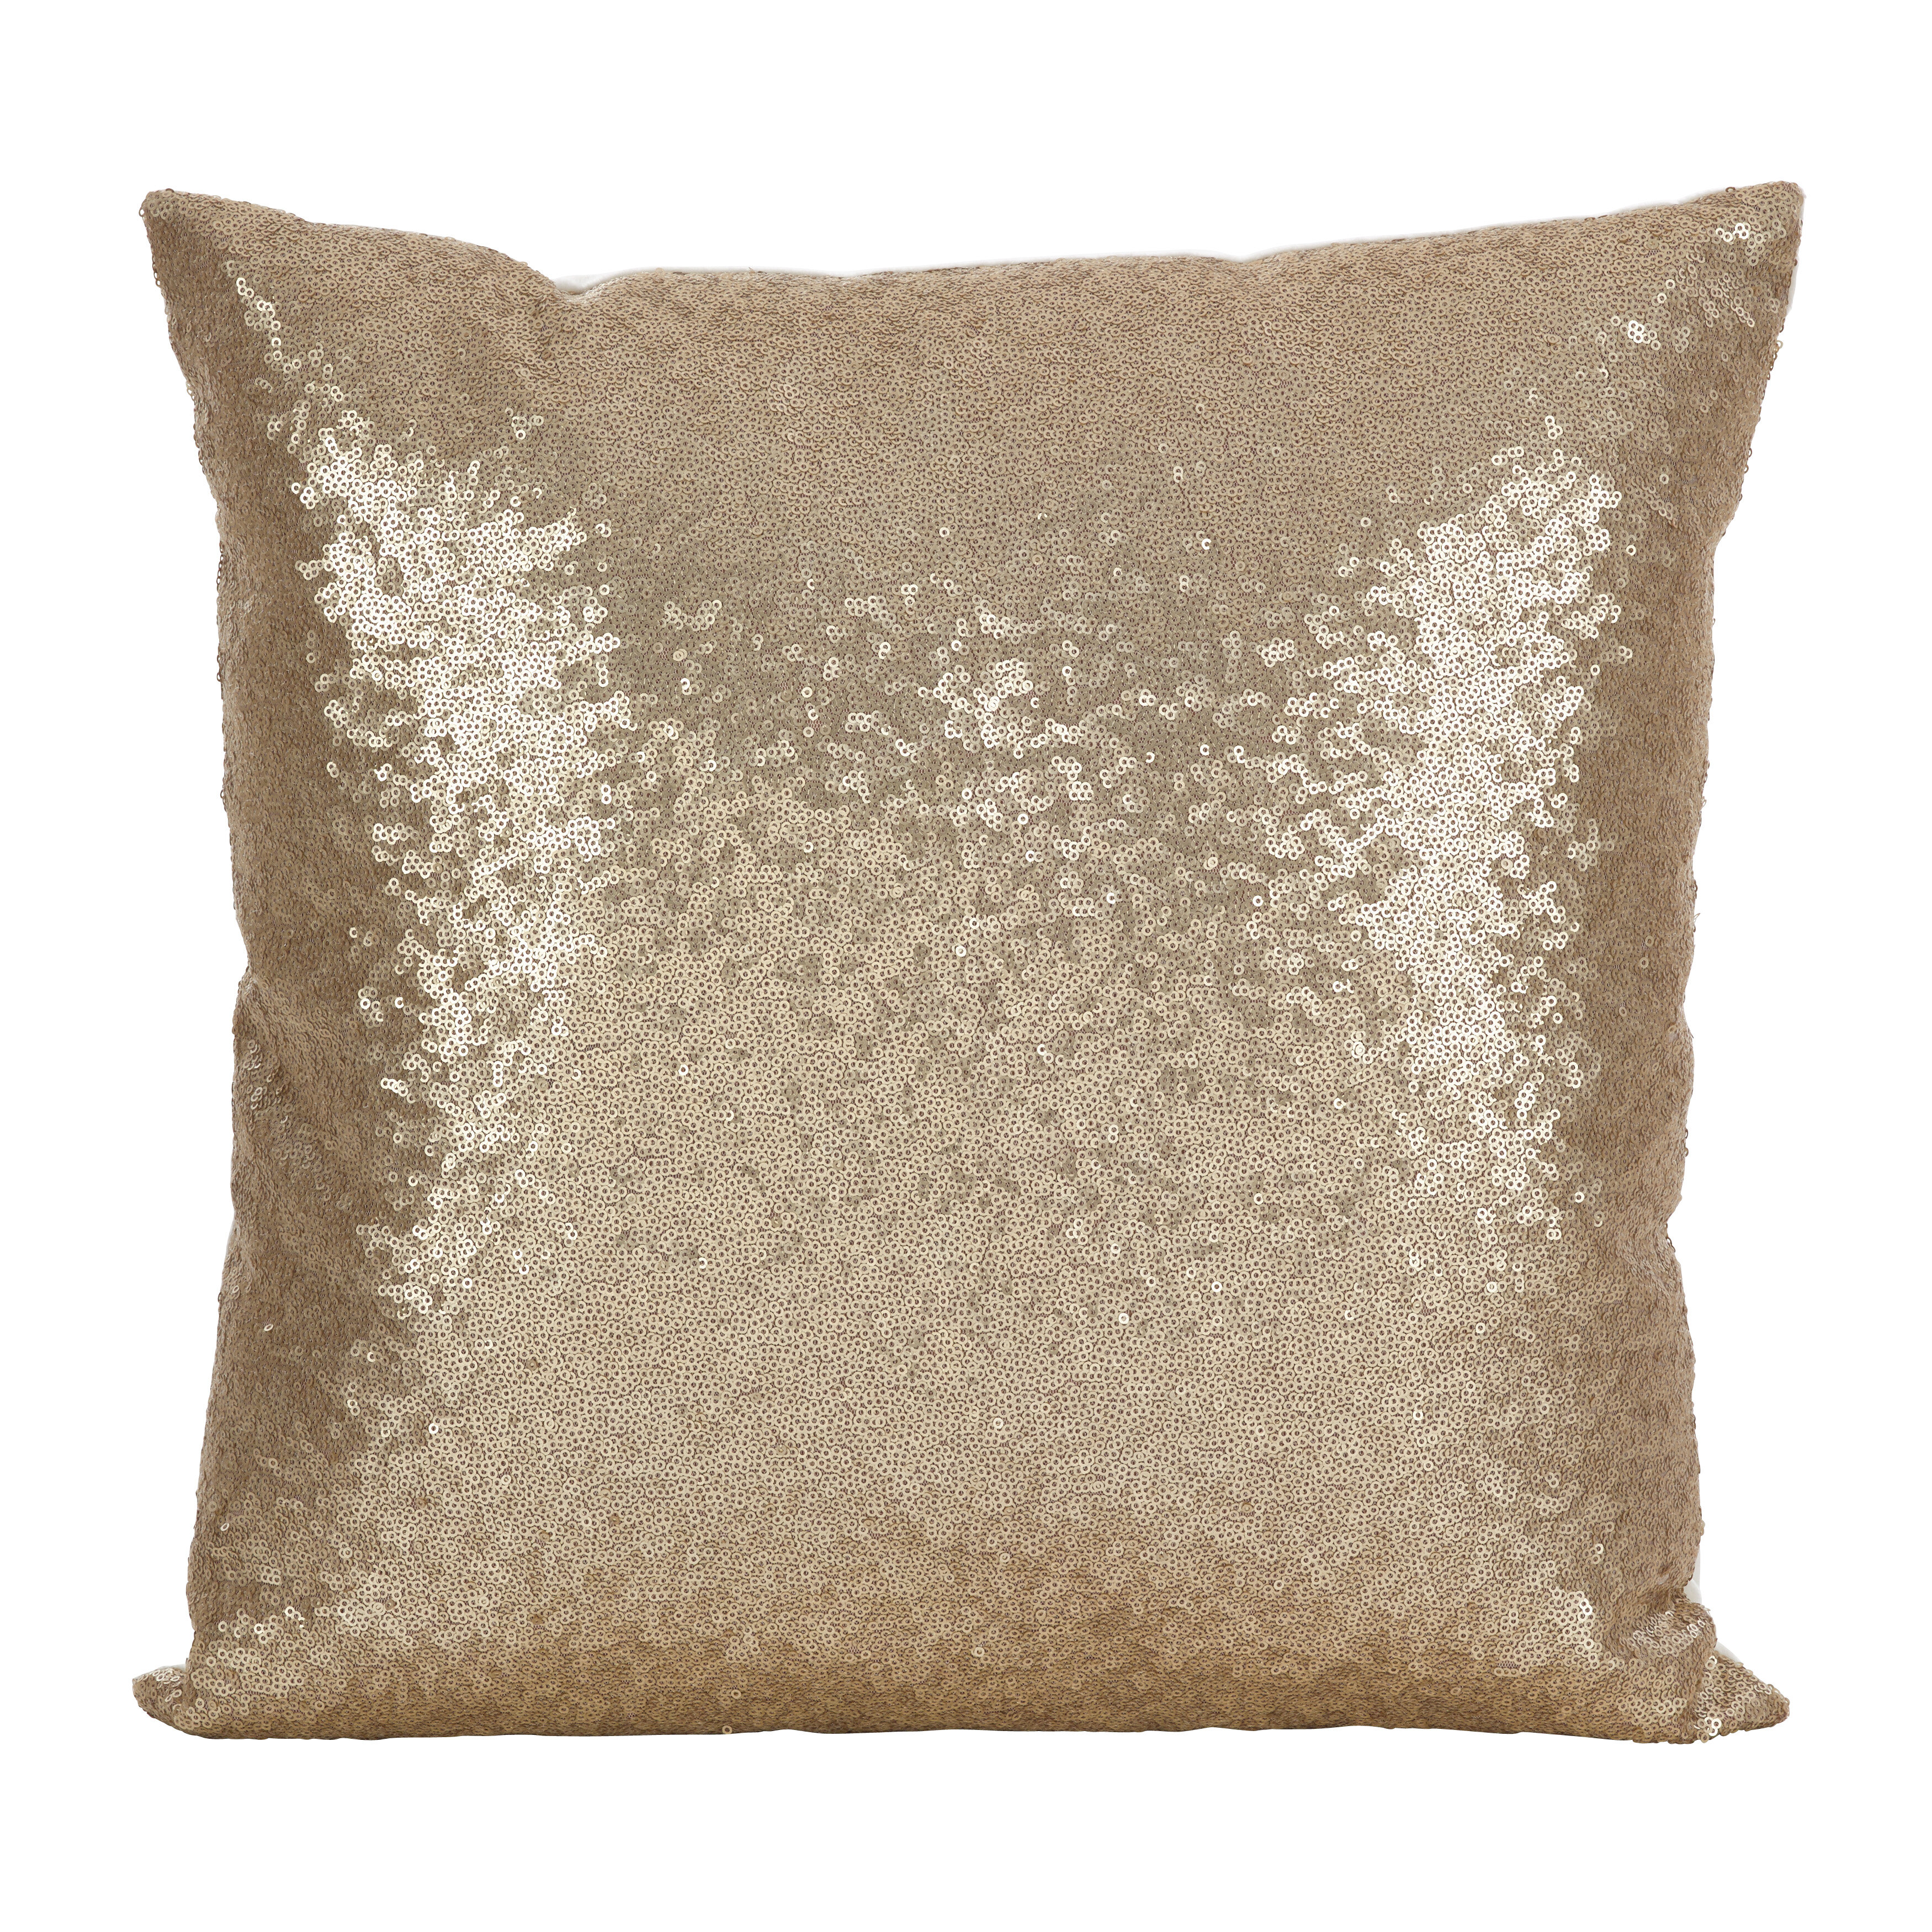 pin turquoise shop sequin the make and room mermaid silver pillow any pillows with sparkle